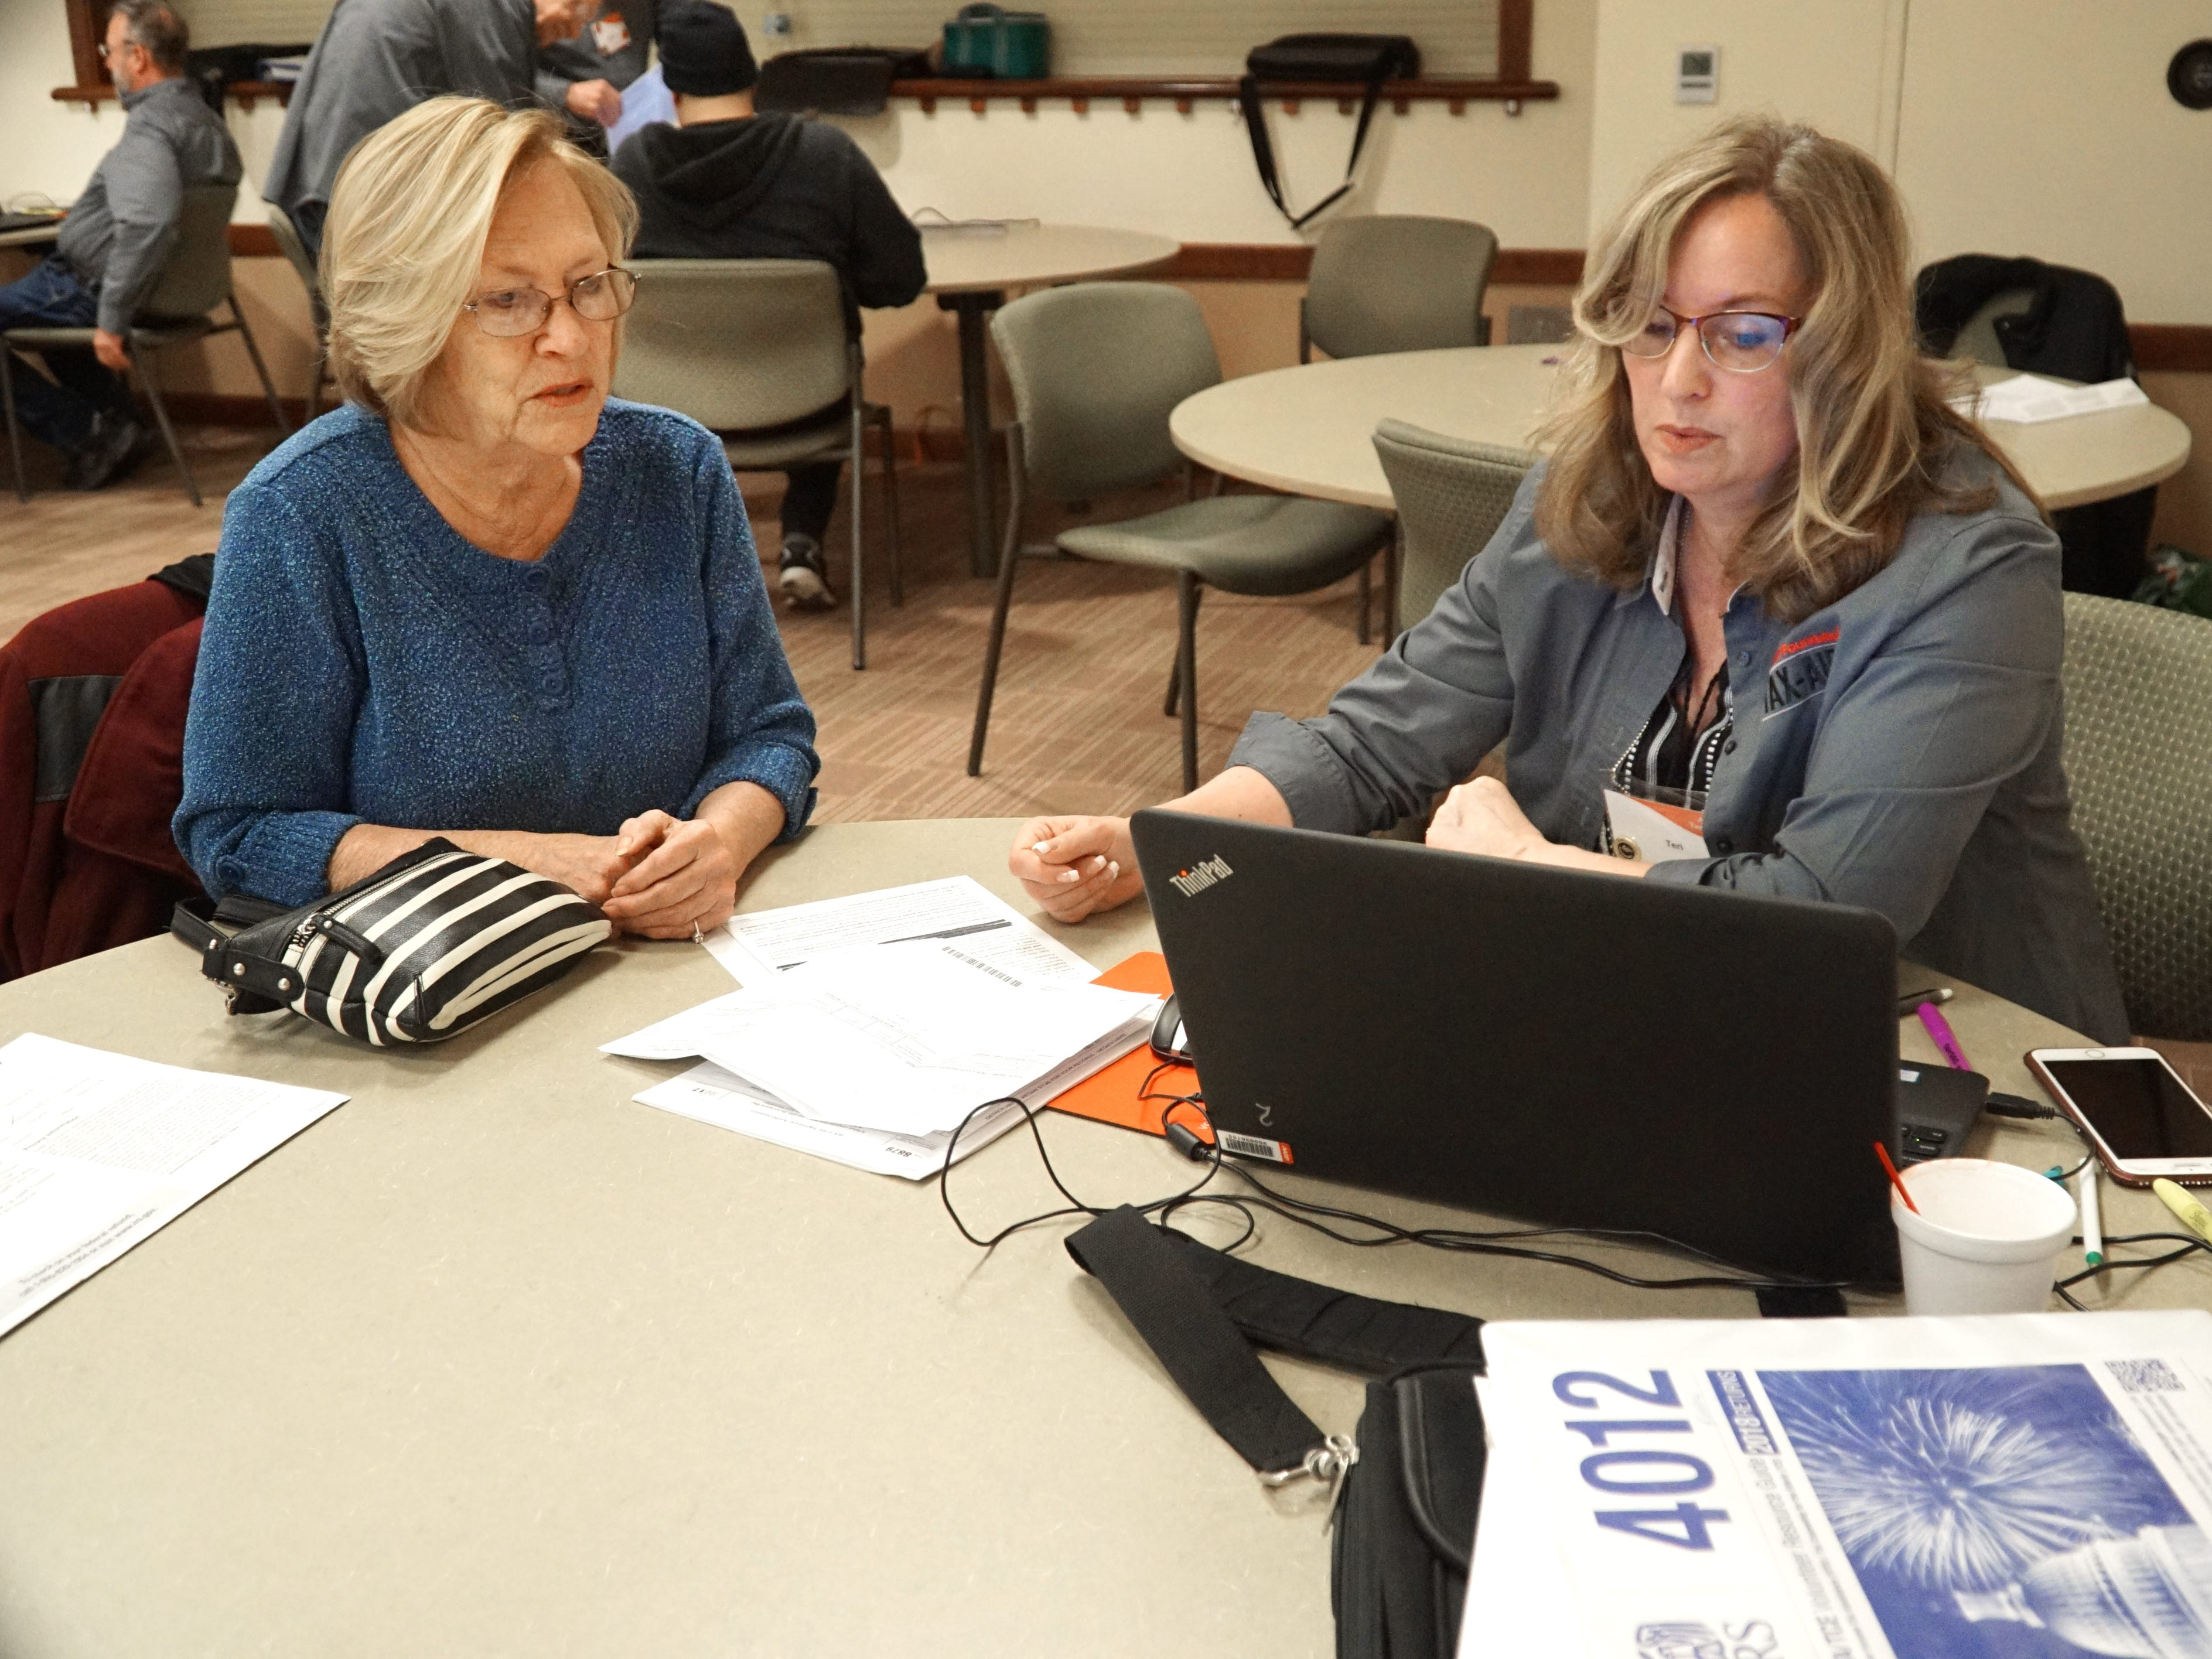 AARP tax prep volunteer Teri Kuehn assists Wanda Reid on March 7 in filing her 2018 federal and state of Michigan taxes at the Northville Community Center on March 7.